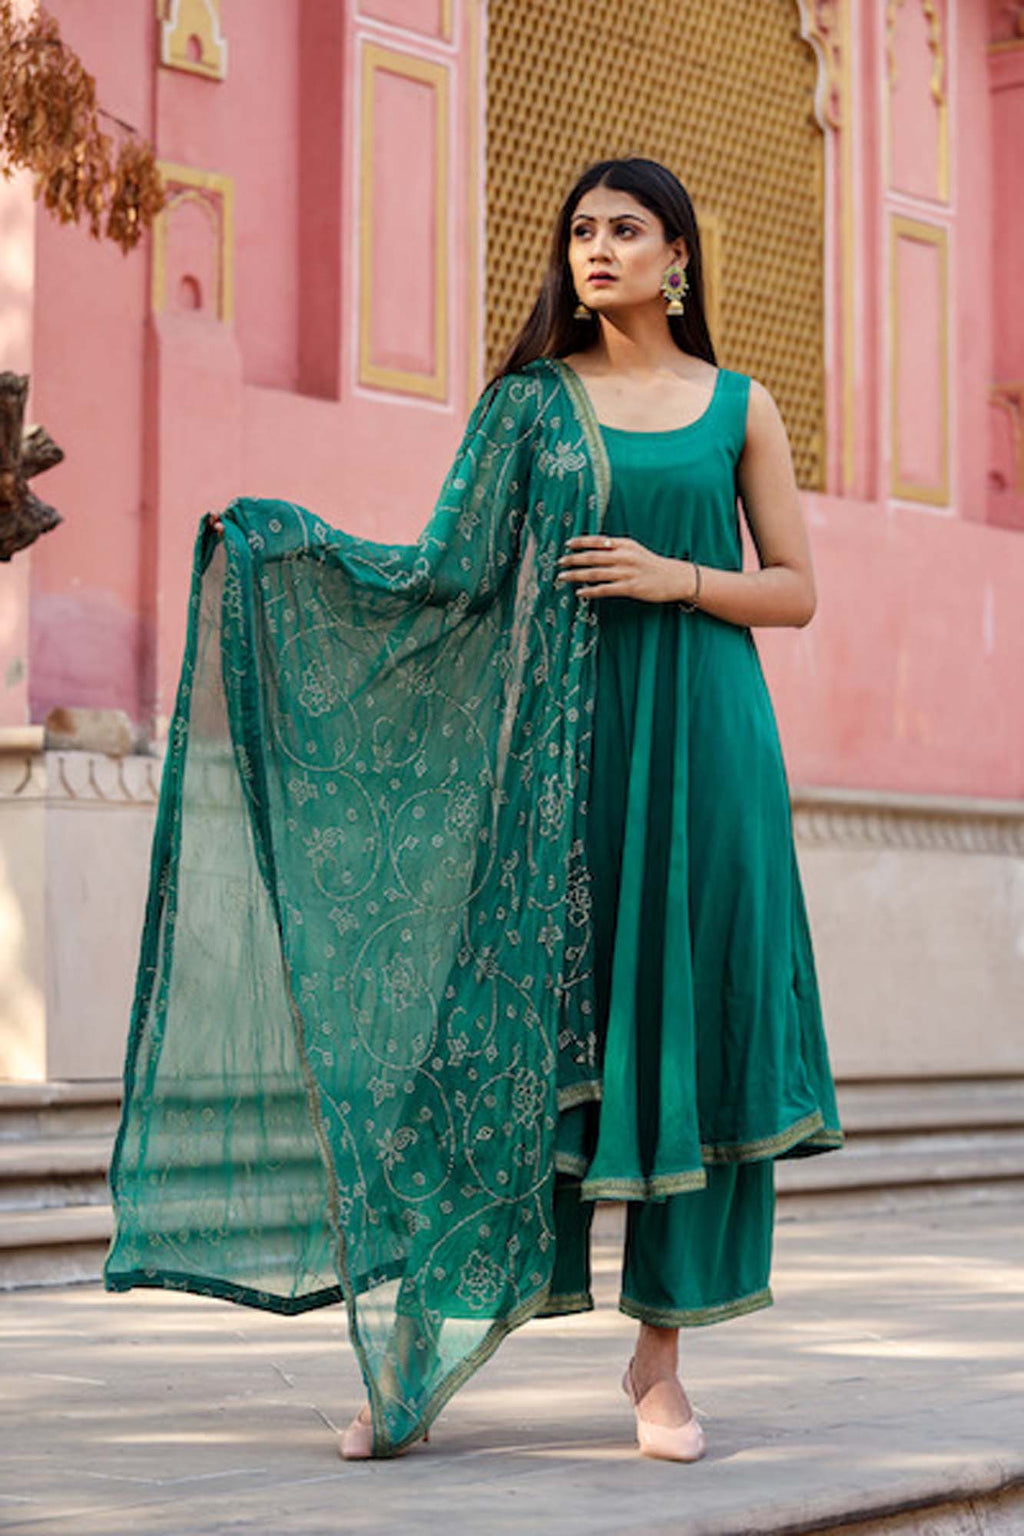 Nafisa Green Sleeveless Anarkali Suit Set with Gold Lace Details - Riviera Closet